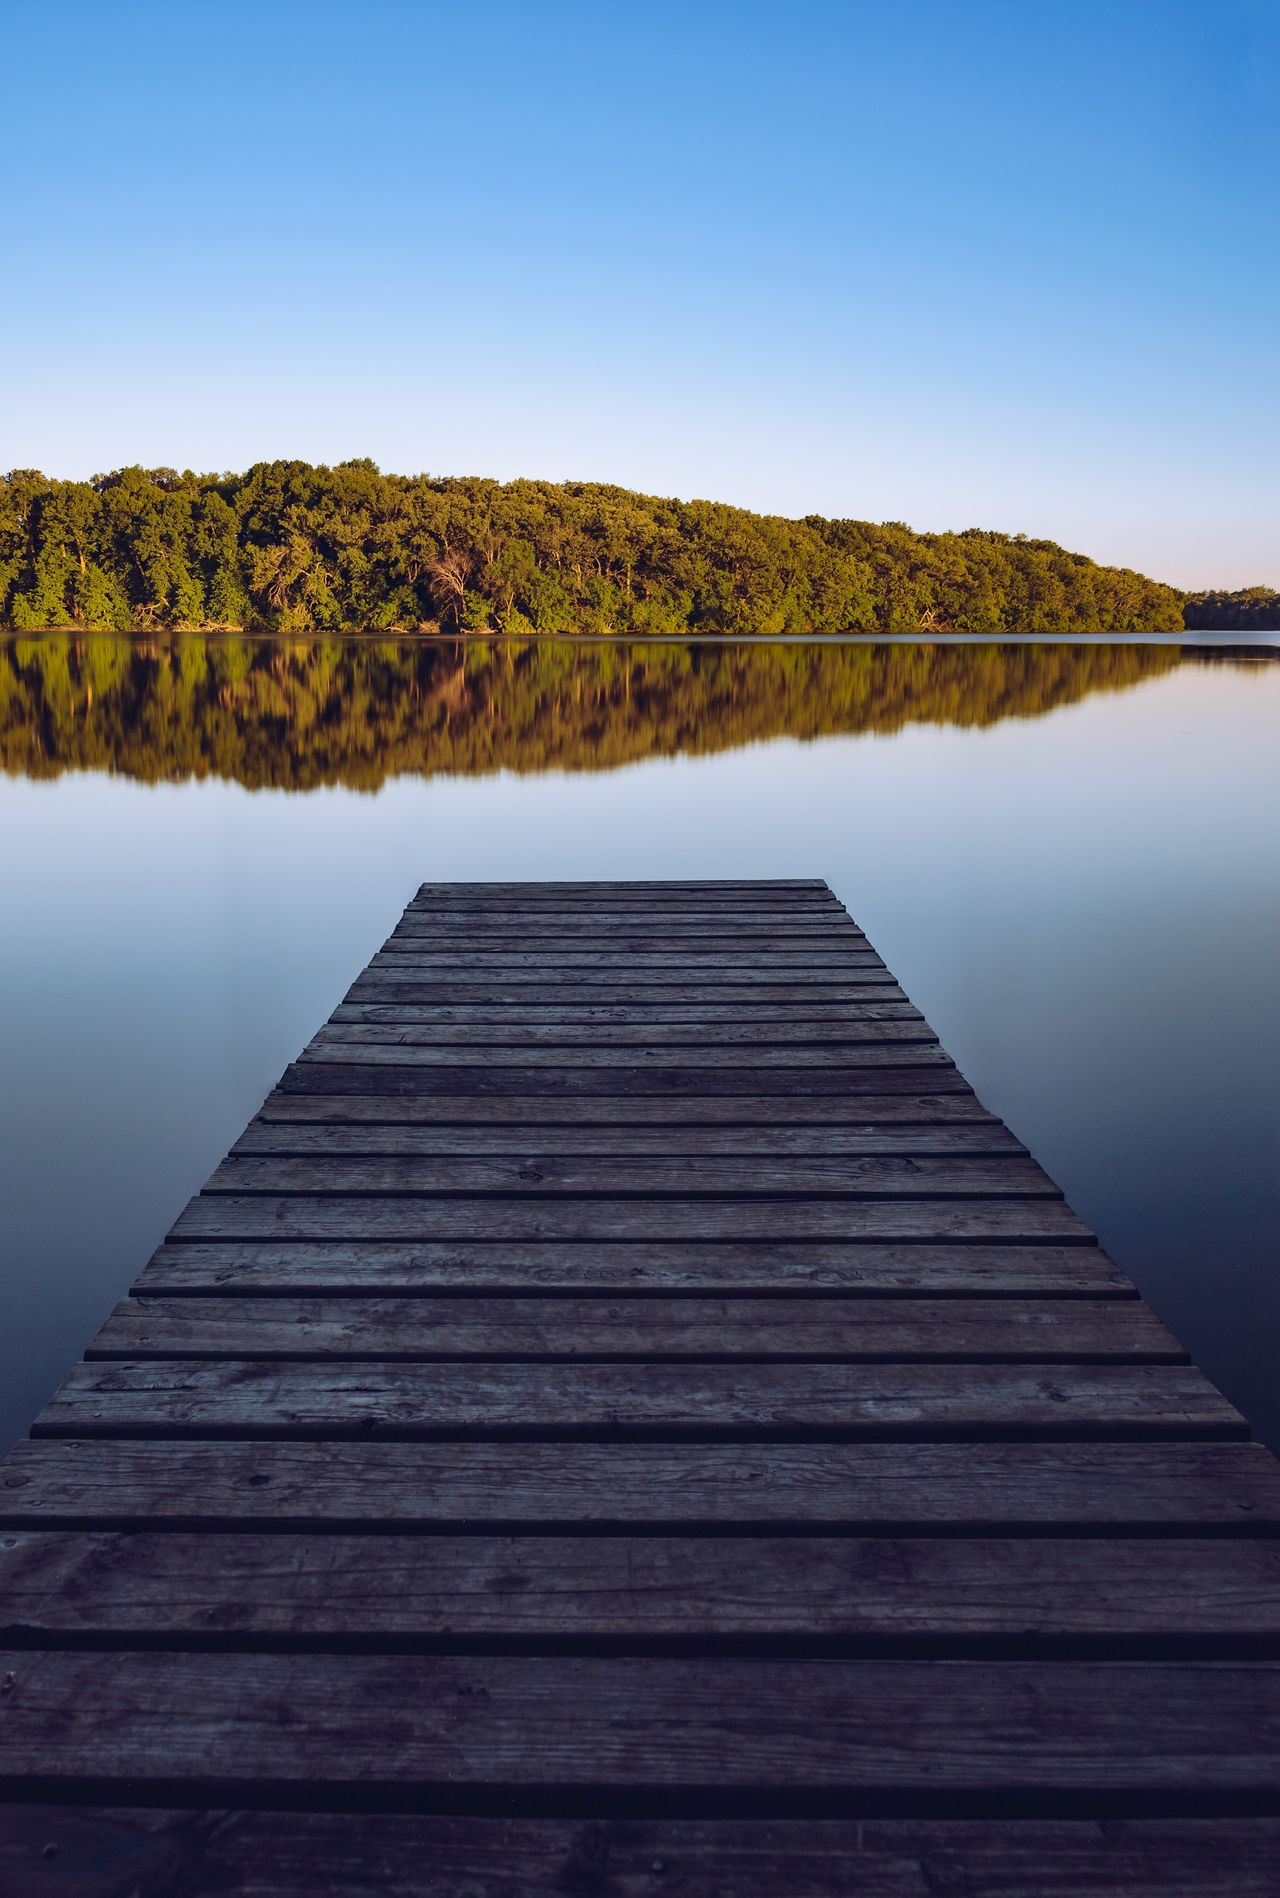 Reflections on the Lake Water Lake Tranquil Scene Nature Scenics Beauty In Nature Pier Clear Sky Tranquility No People Outdoors Wood - Material The Way Forward Day Jetty Blue Sky Wood Paneling Tree Reflection Reflections Reflect Boat Dock Dock